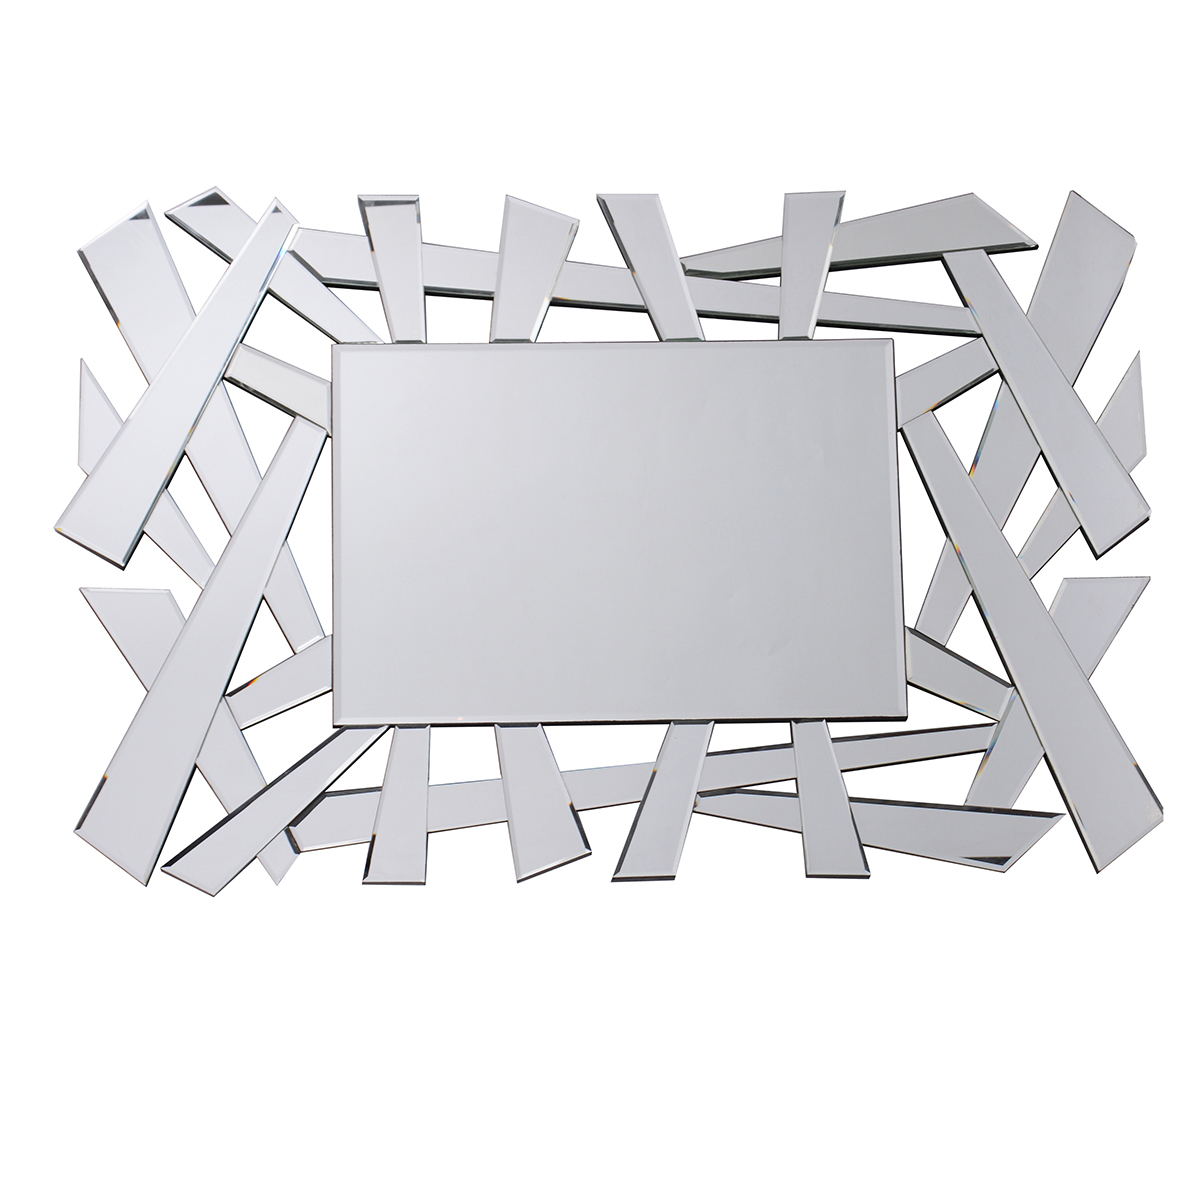 Abstract Wall Mirrors Pertaining To Well Known Wall Mirror Jinhua Richtop Crafts Co., Ltd (View 4 of 20)